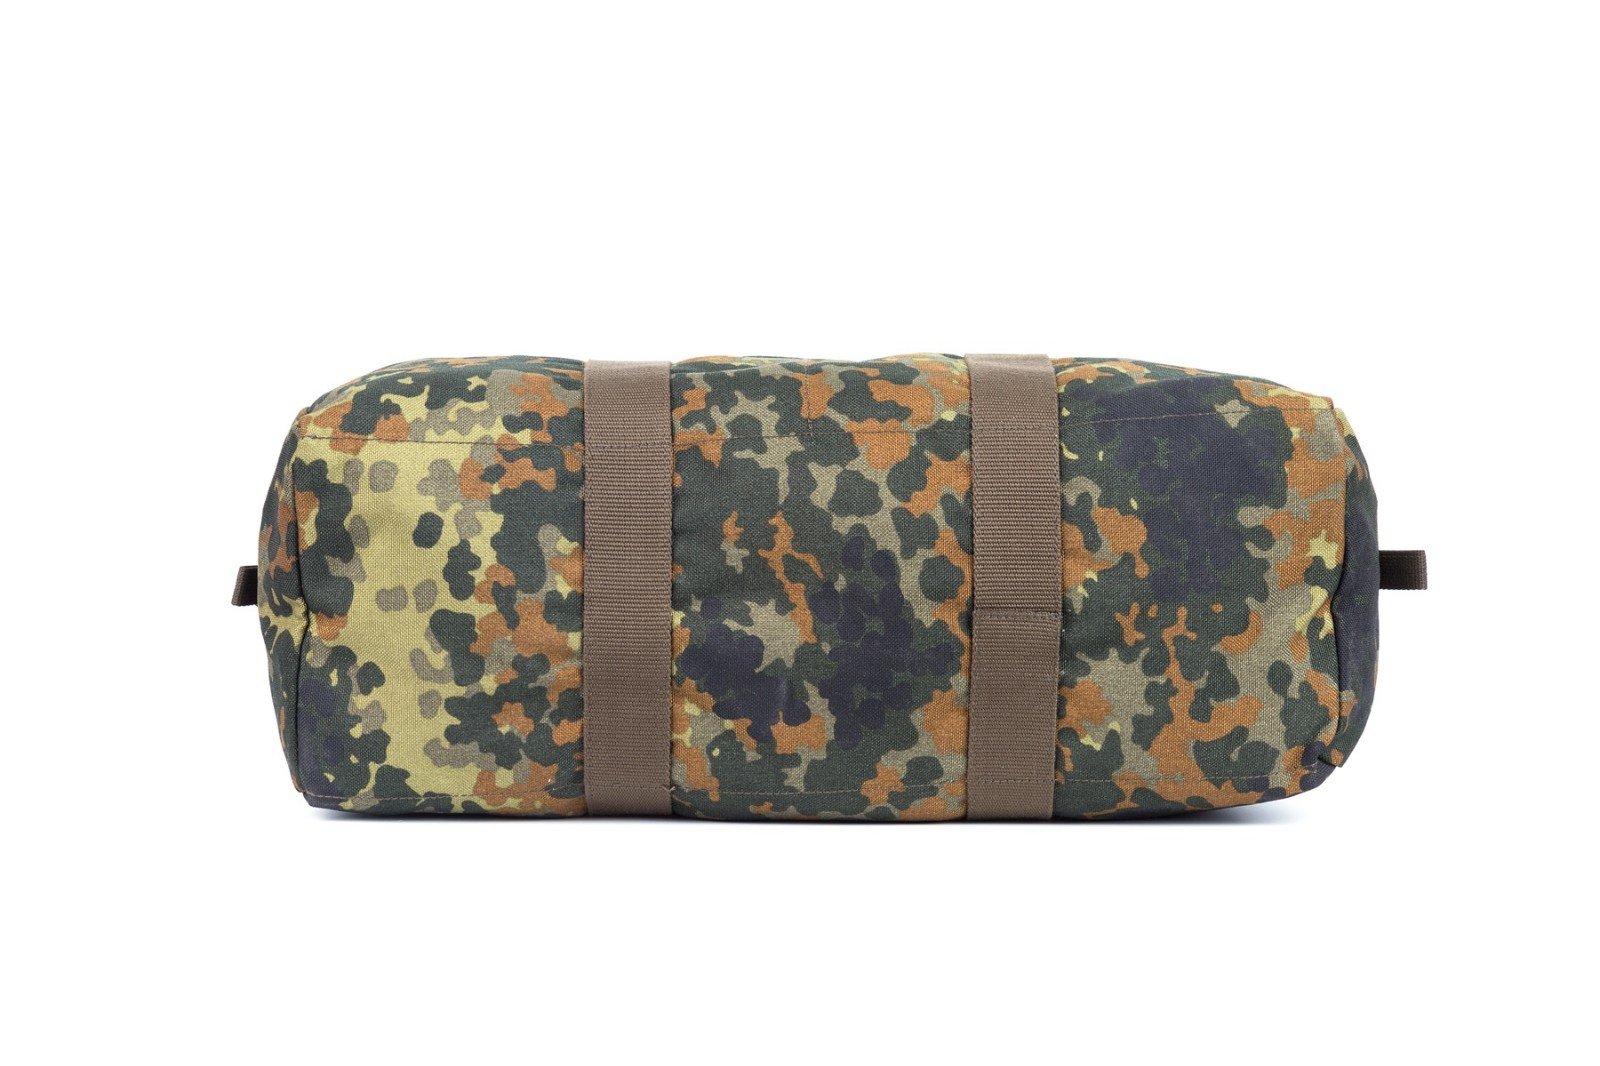 GF bags-Manufacturer Of Military Gear Bags, Military Tactical Bag On GF Bags-6